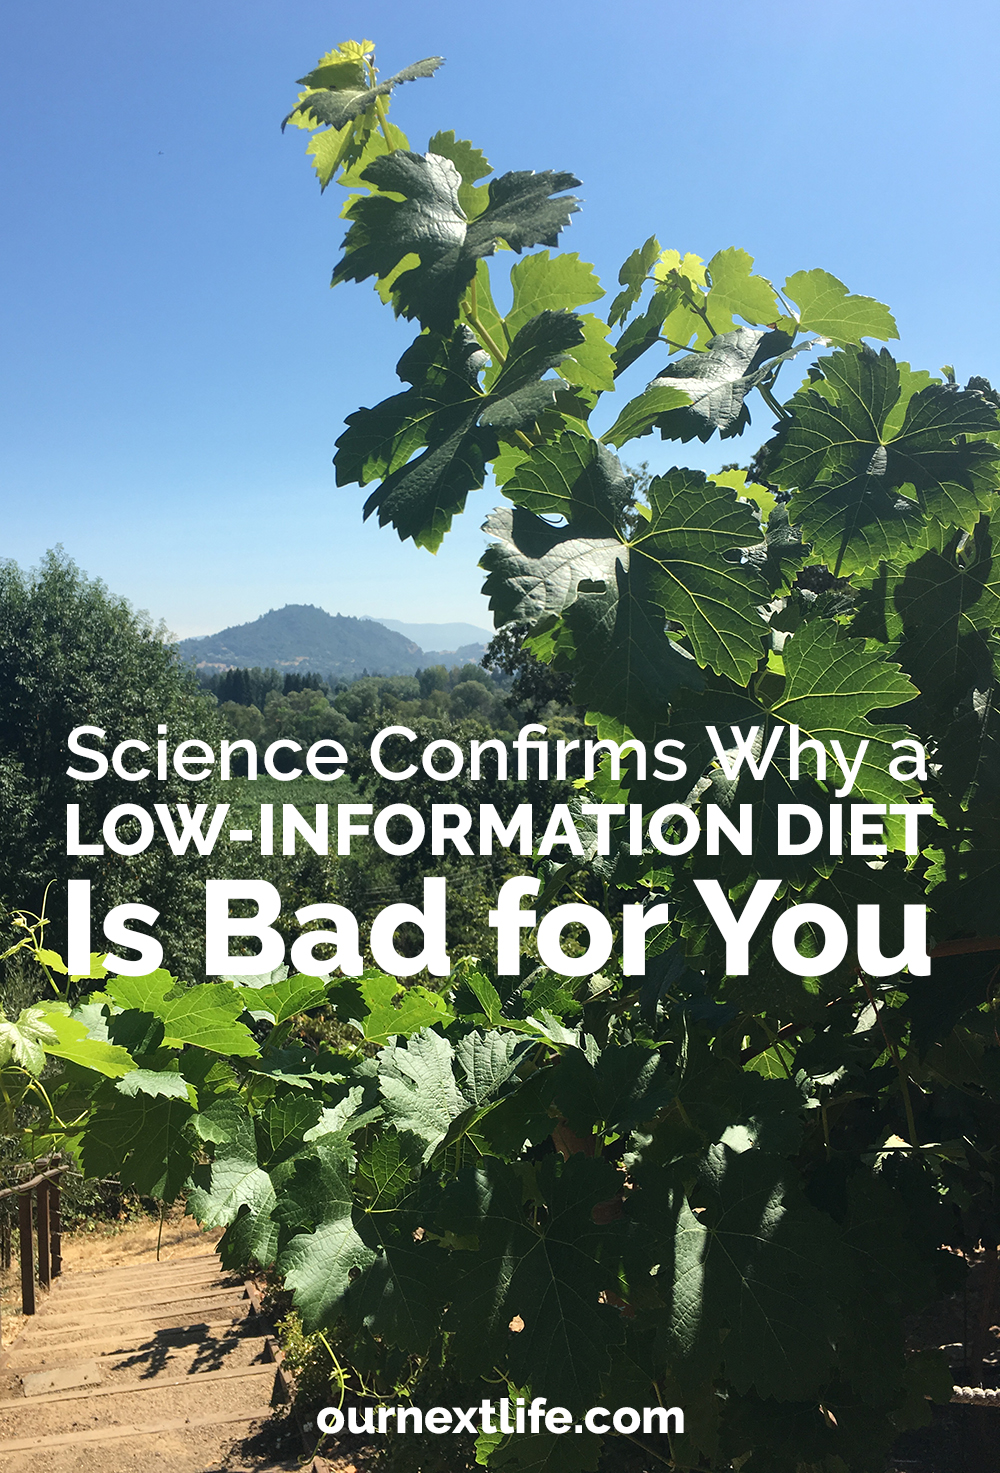 Science confirms why a low-information diet is bad for you // OurNextLife.com // early retirement, financial independence, productivity, lifestyle design, financial freedom, happiness, health, longevity